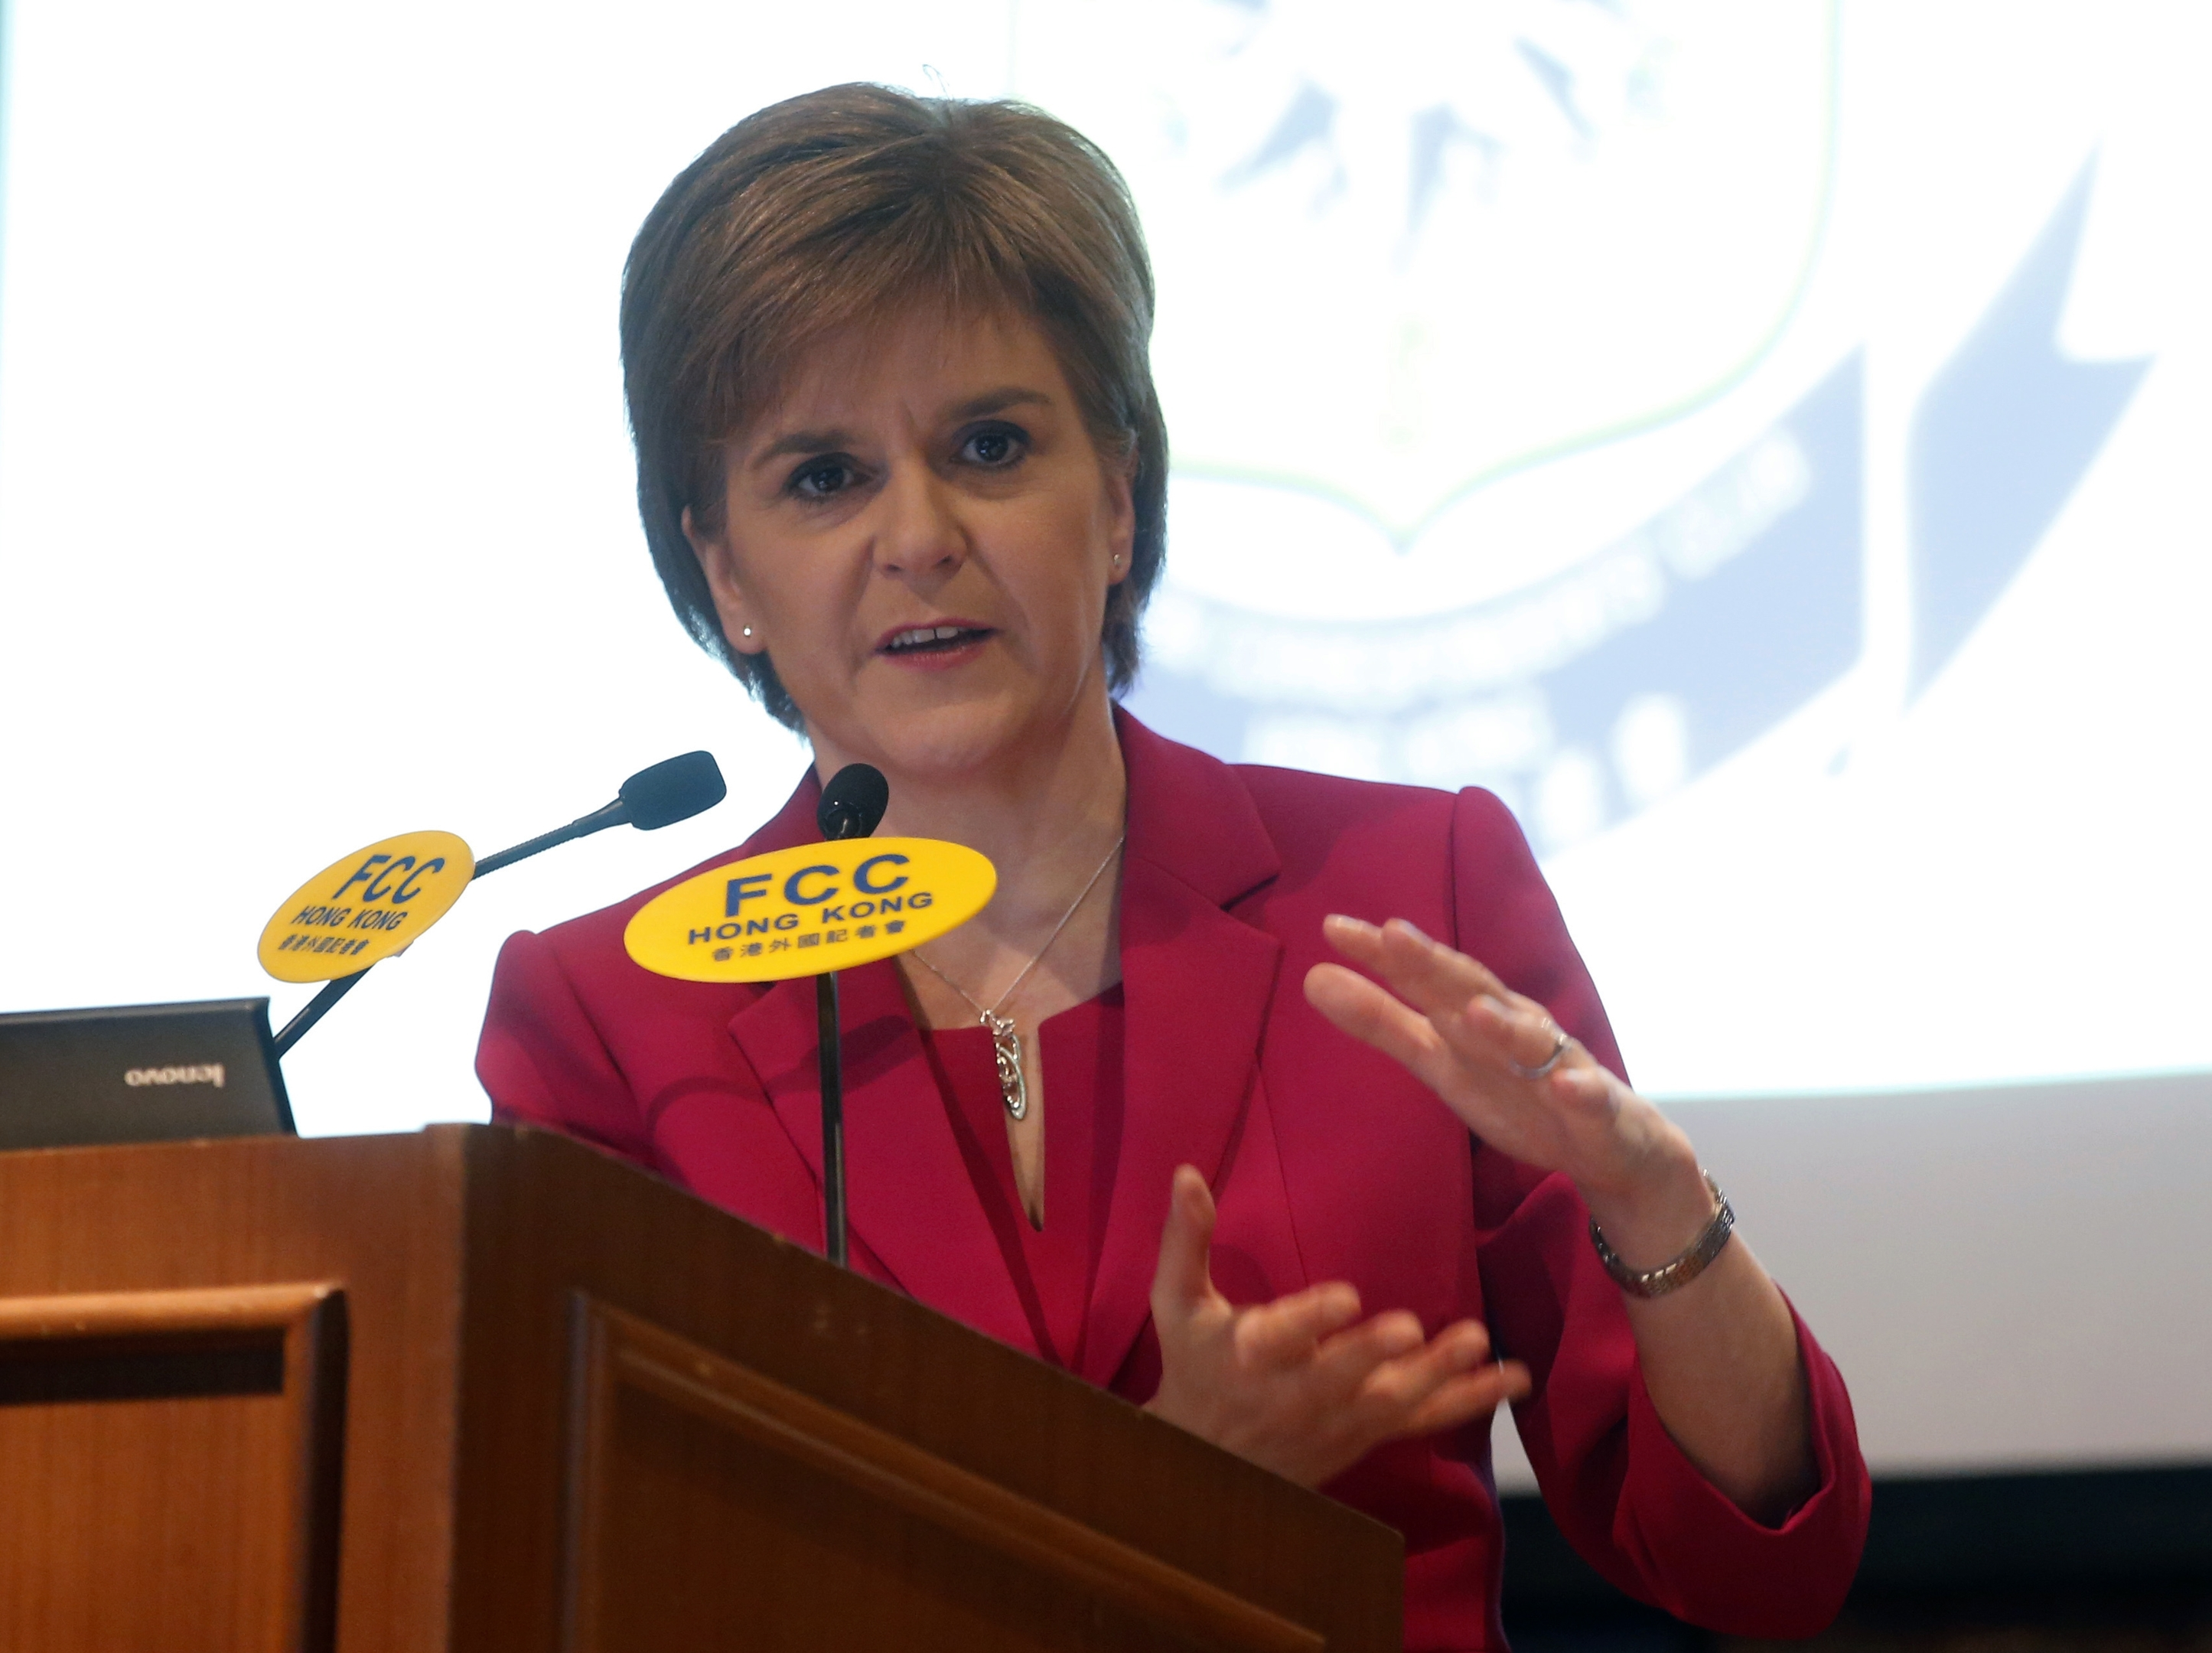 First Minister of Scotland Nicola Sturgeon says online abuse must end